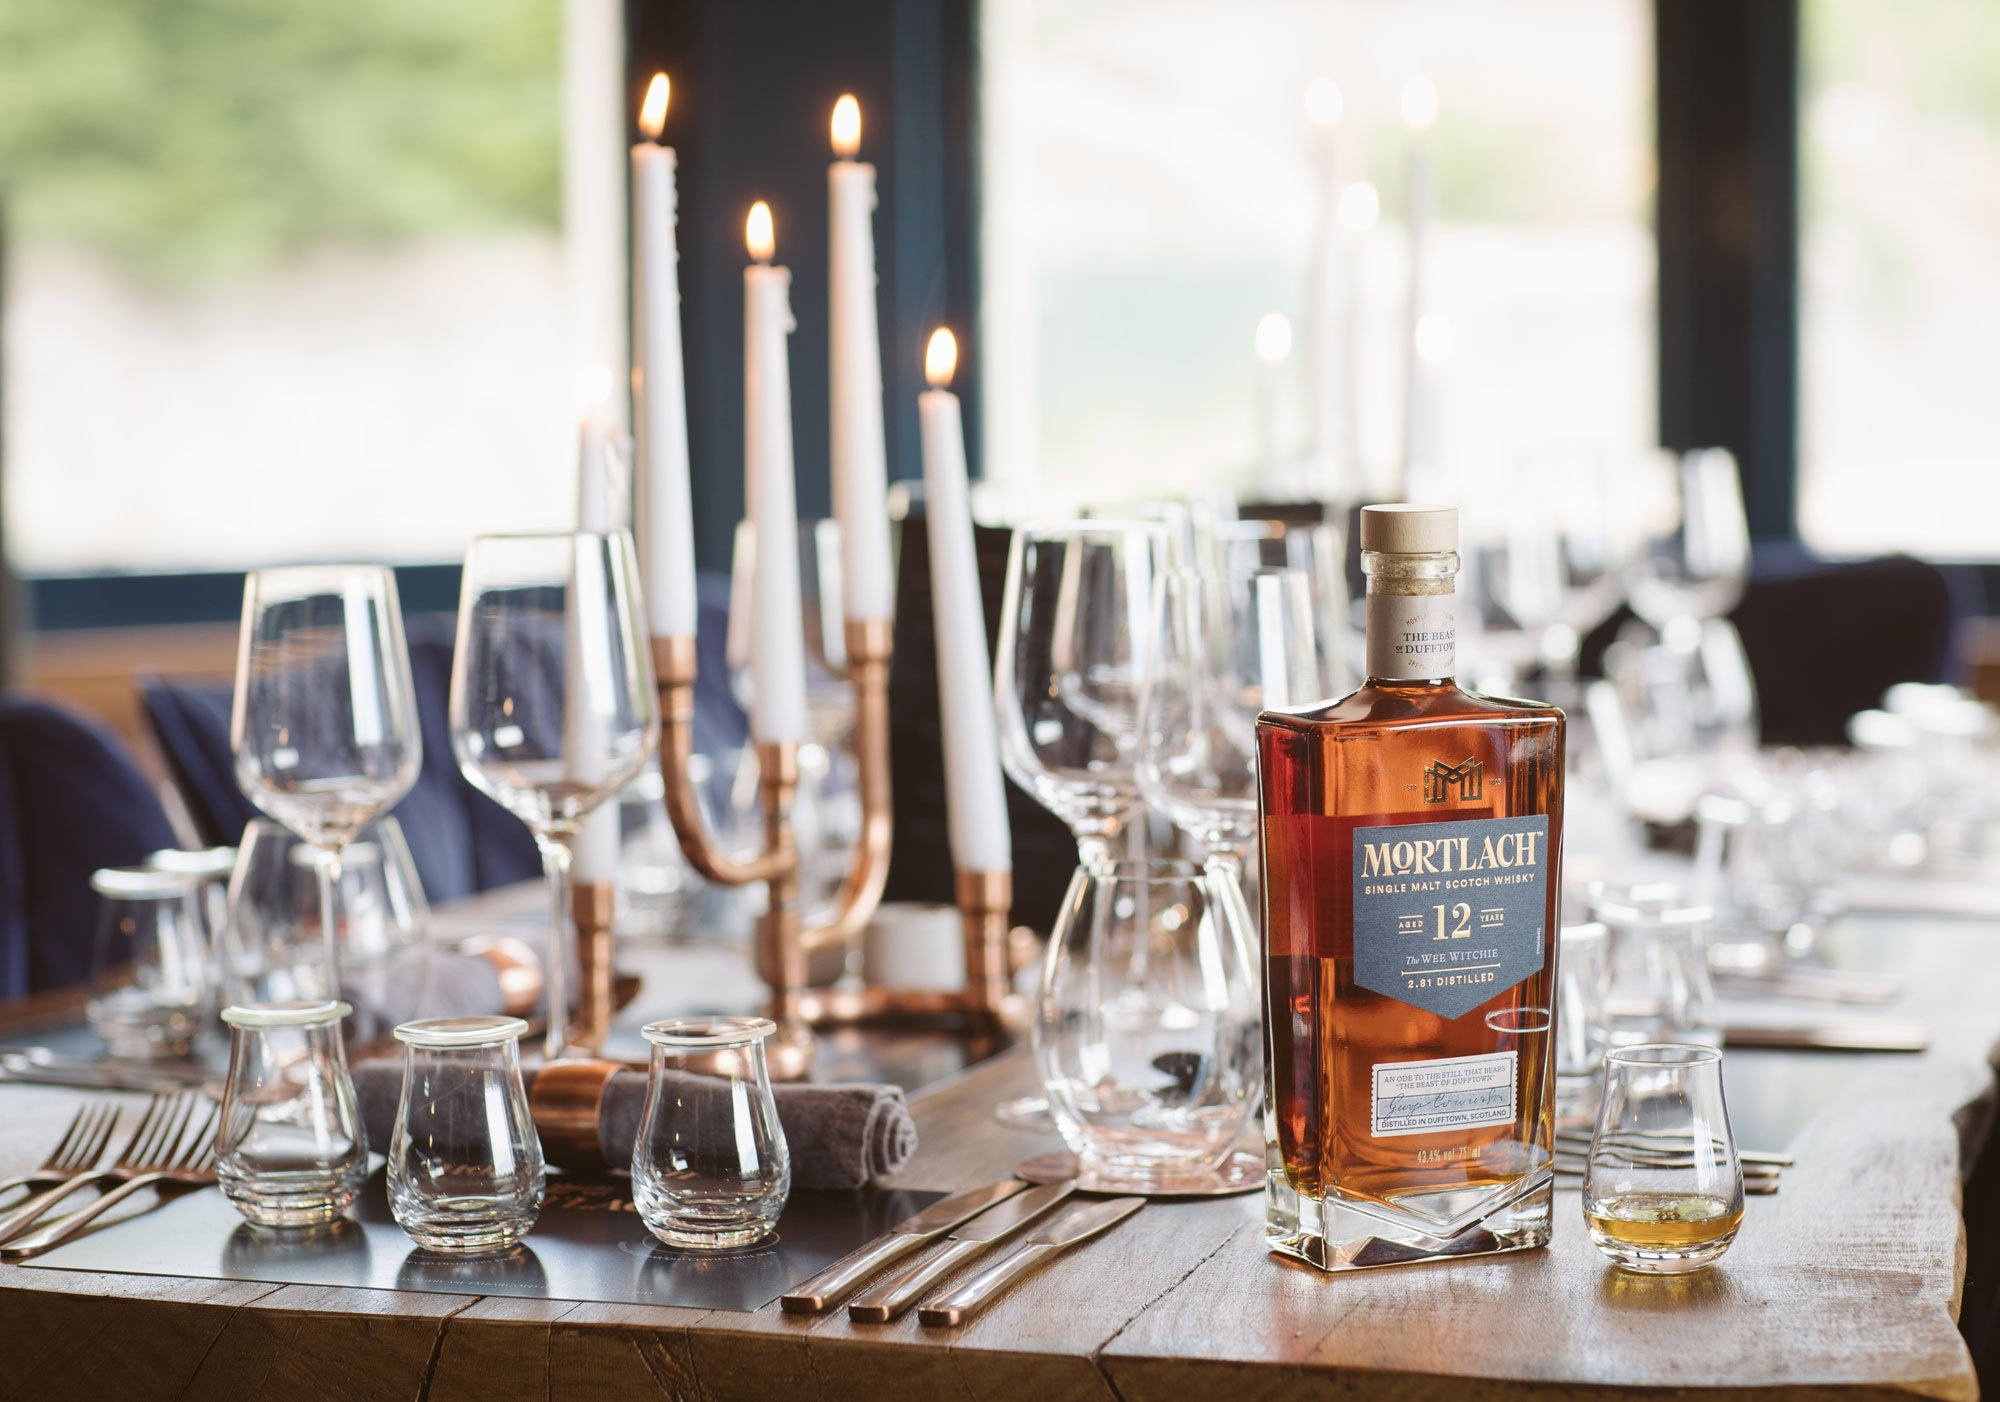 Mortlach video masterclass with malt whisky brand ambassador TJ